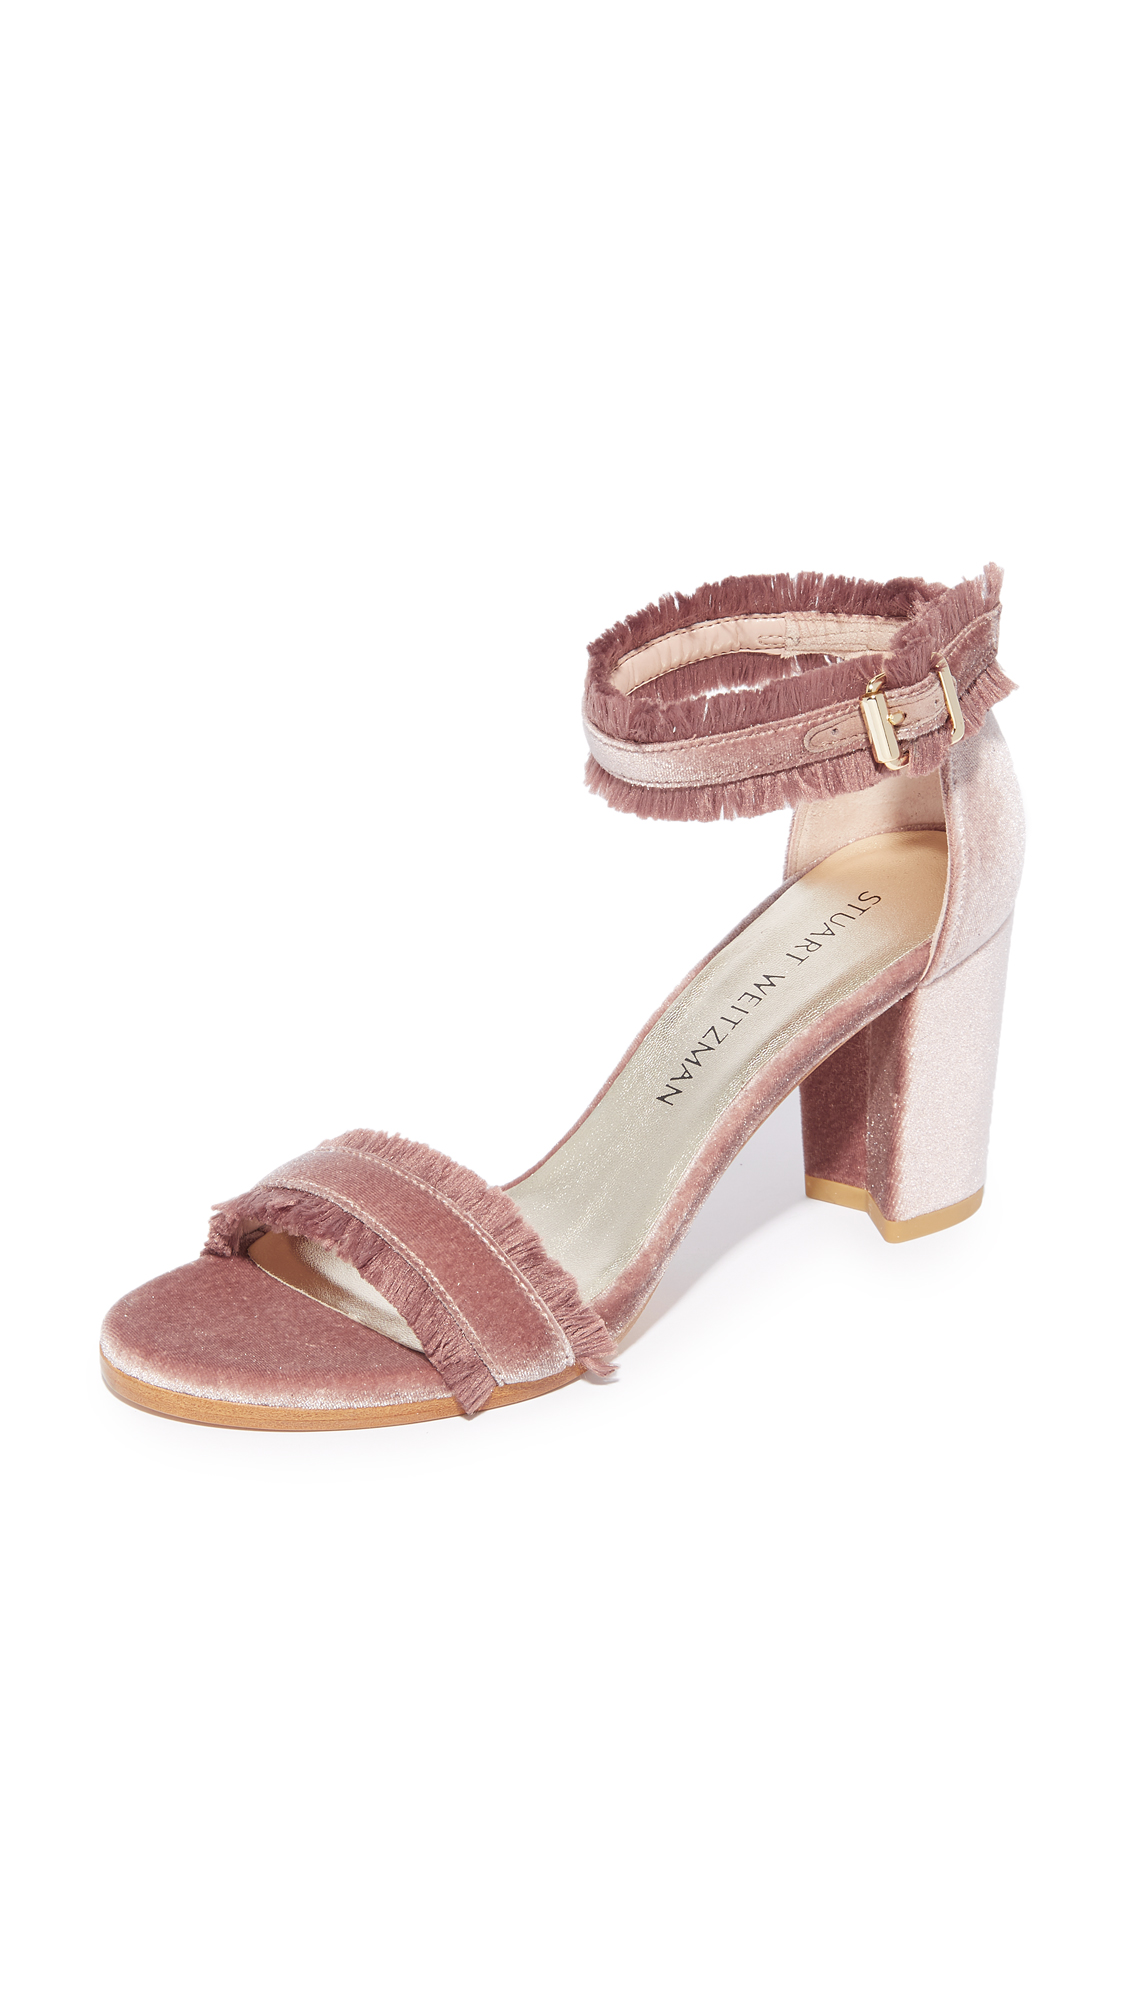 Stuart Weitzman Frayed Sandals - Candy